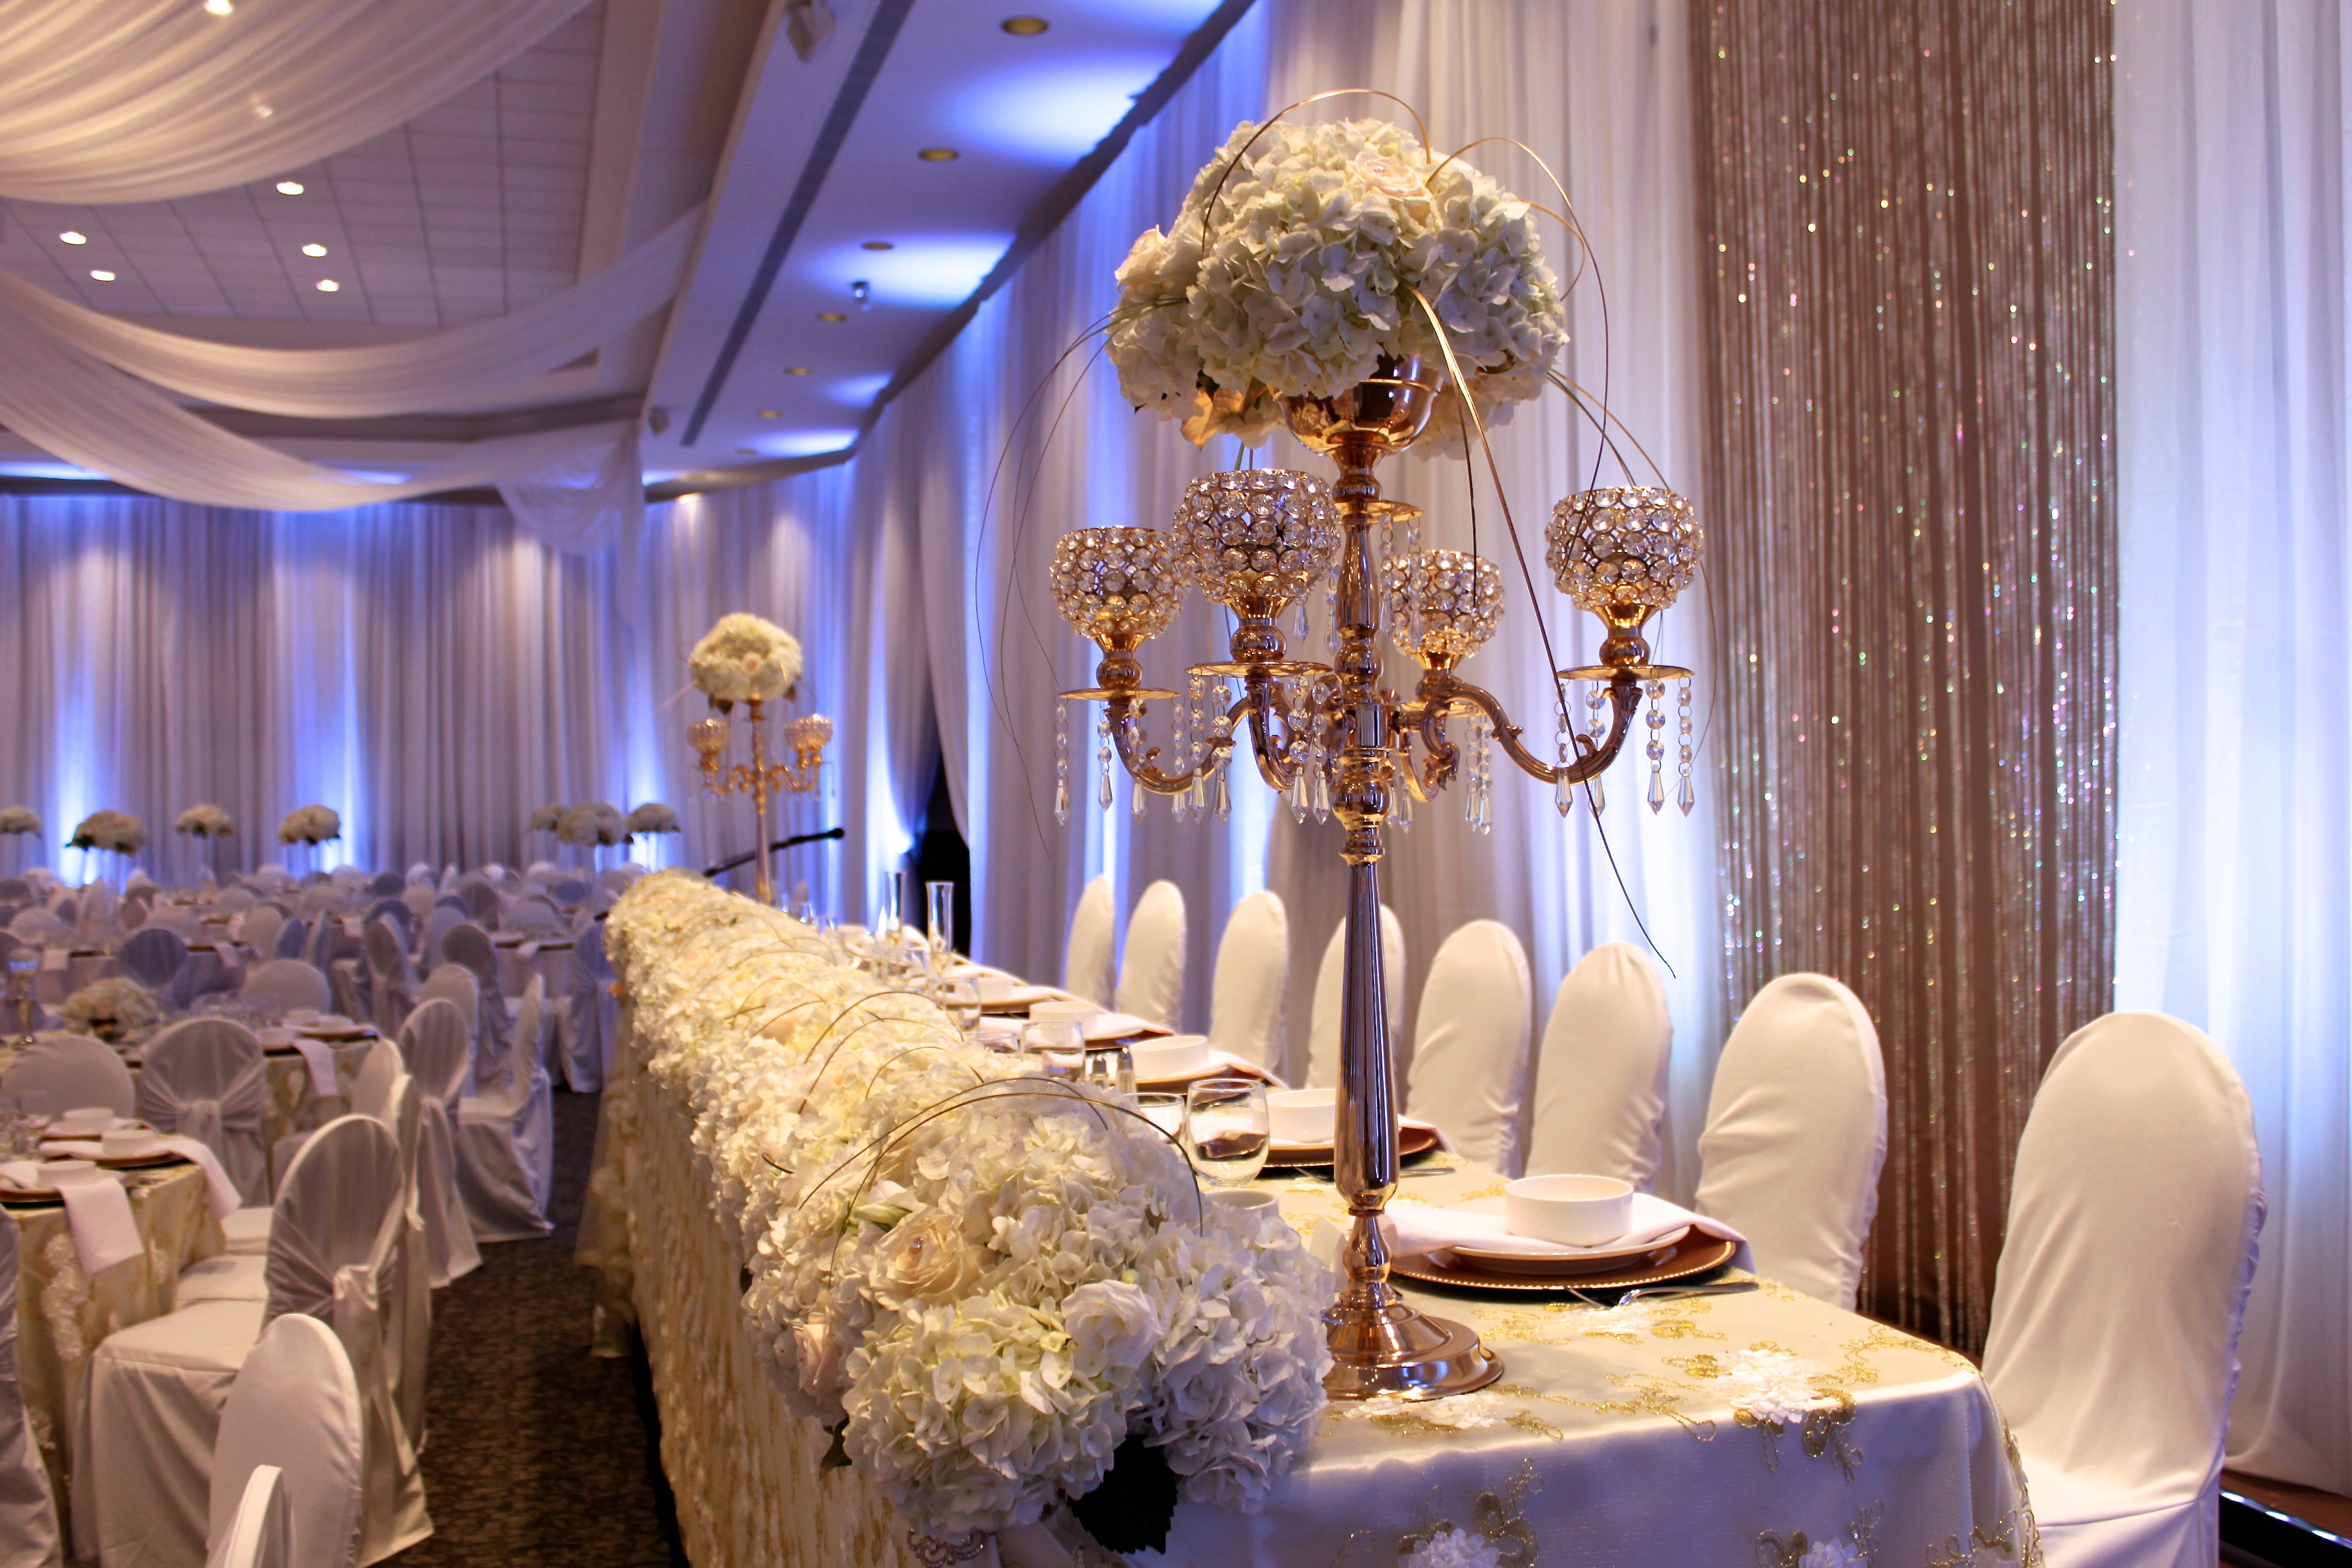 Unique wedding reception decoration must haves wedding wedding reception decoration must haves a wedding reception image collections wedding decoration ideas junglespirit Image collections